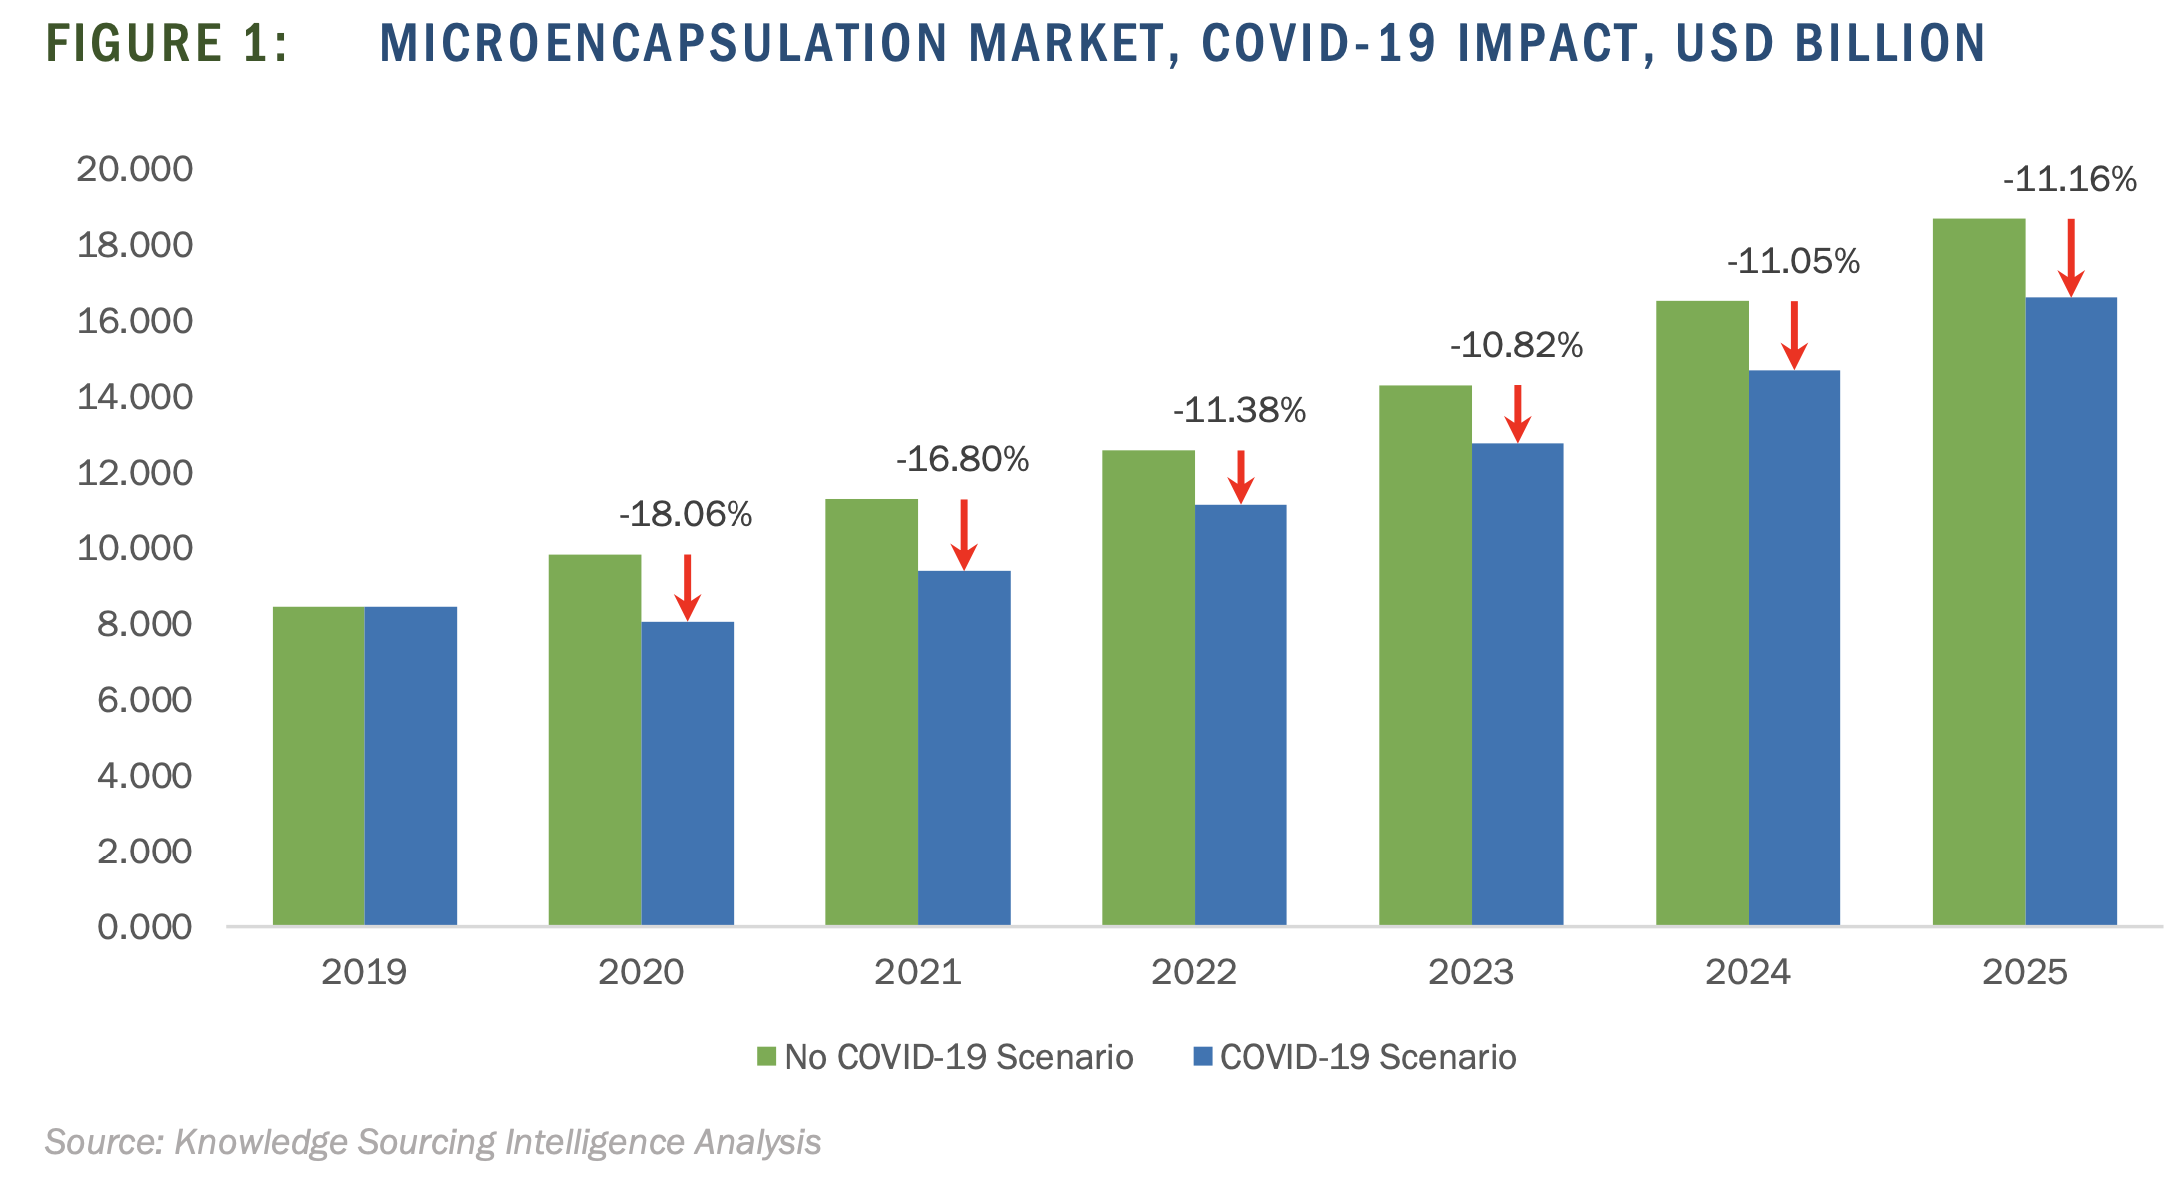 Despite COVID-19, the microcapsule market is expected to keep growing